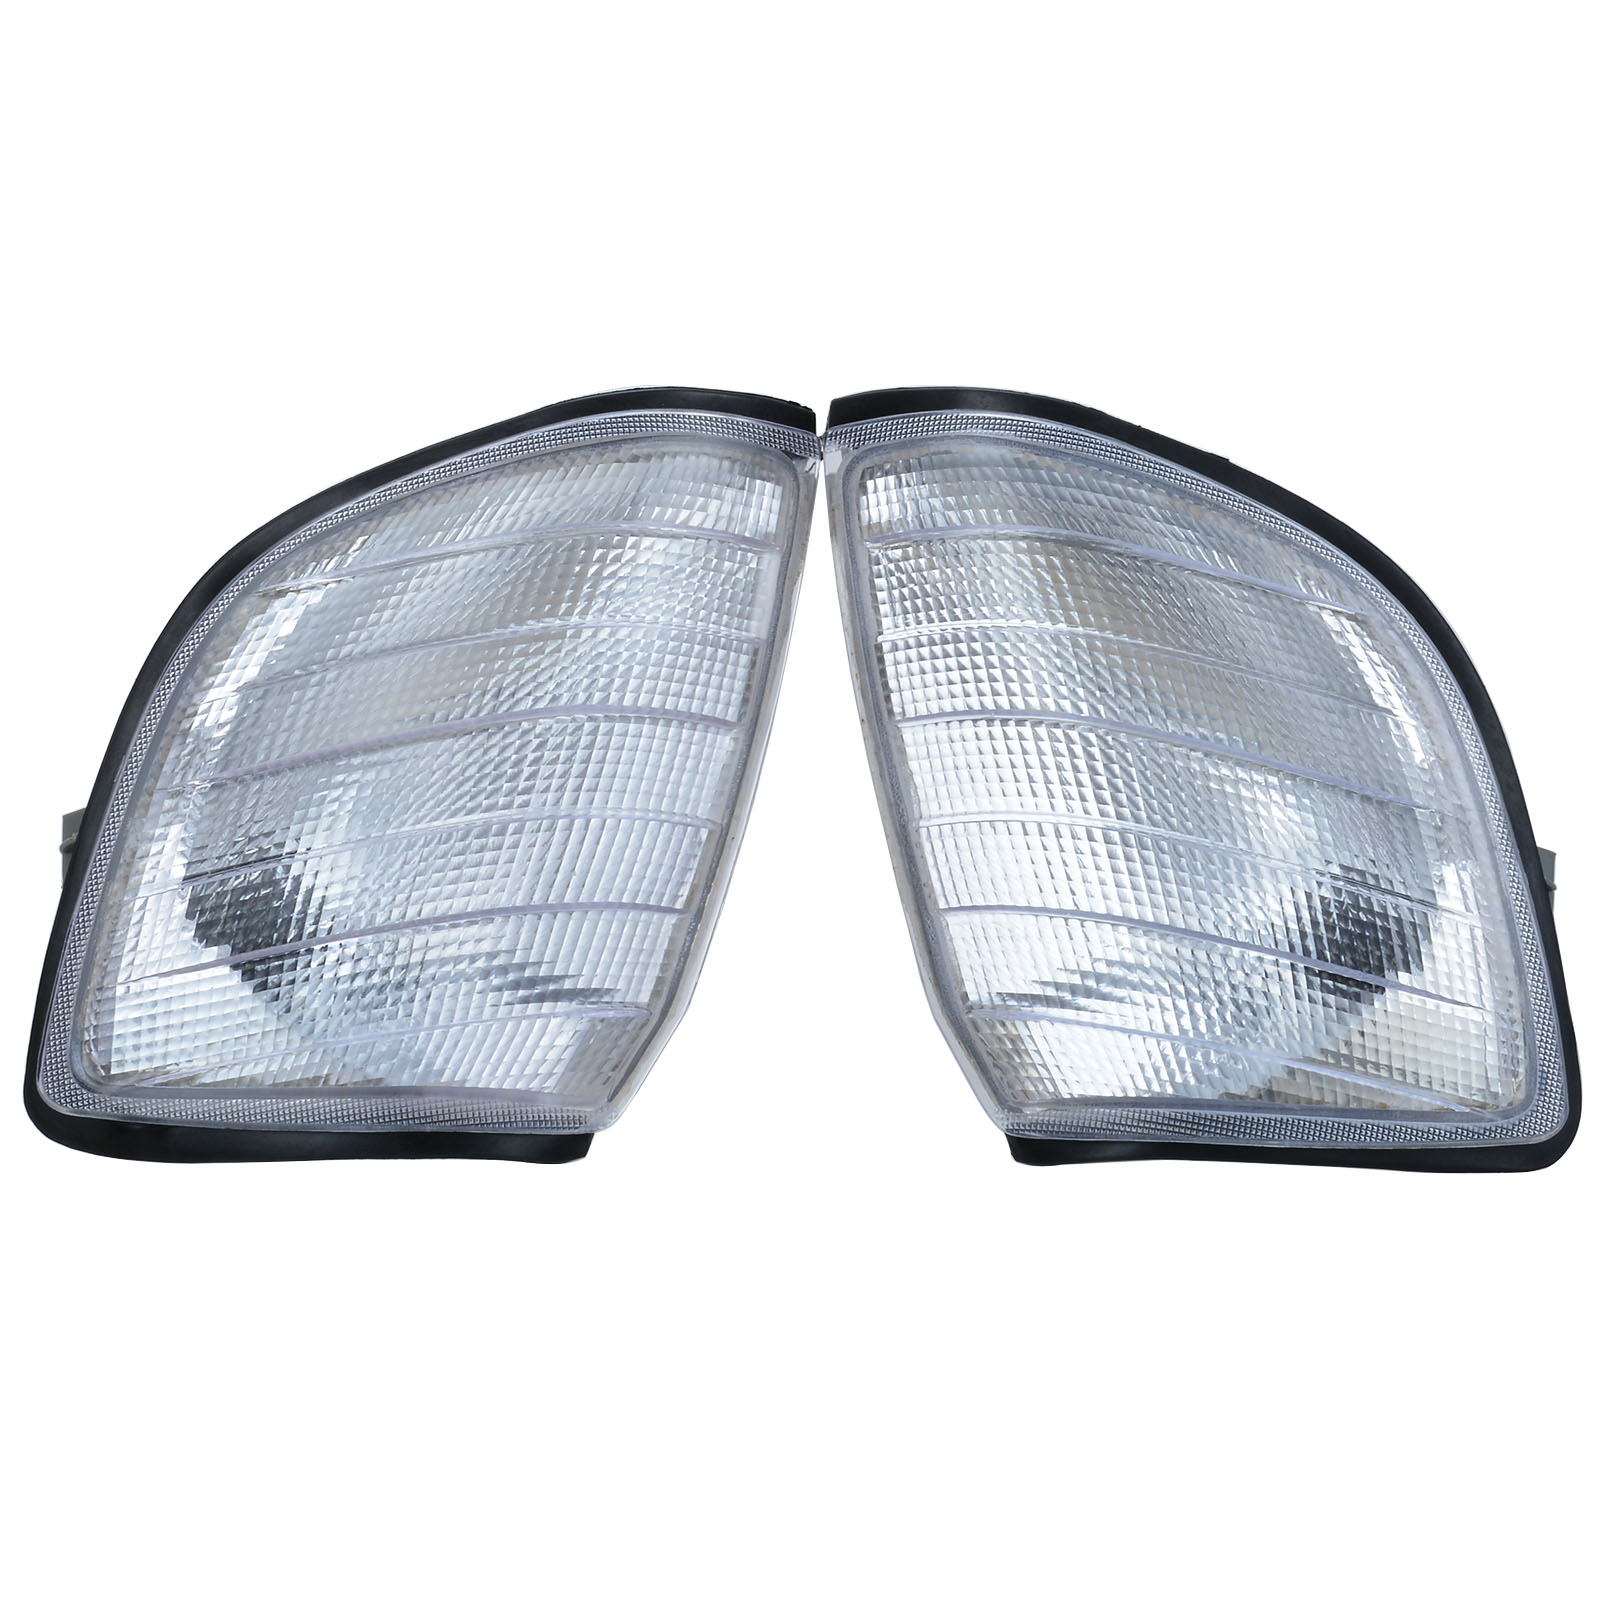 For <font><b>Mercedes</b></font> <font><b>Benz</b></font> <font><b>W140</b></font> 1991-1998 2pcs Car Side Corner Light Turn Signal Lamp Frame Cover Clear Lens image